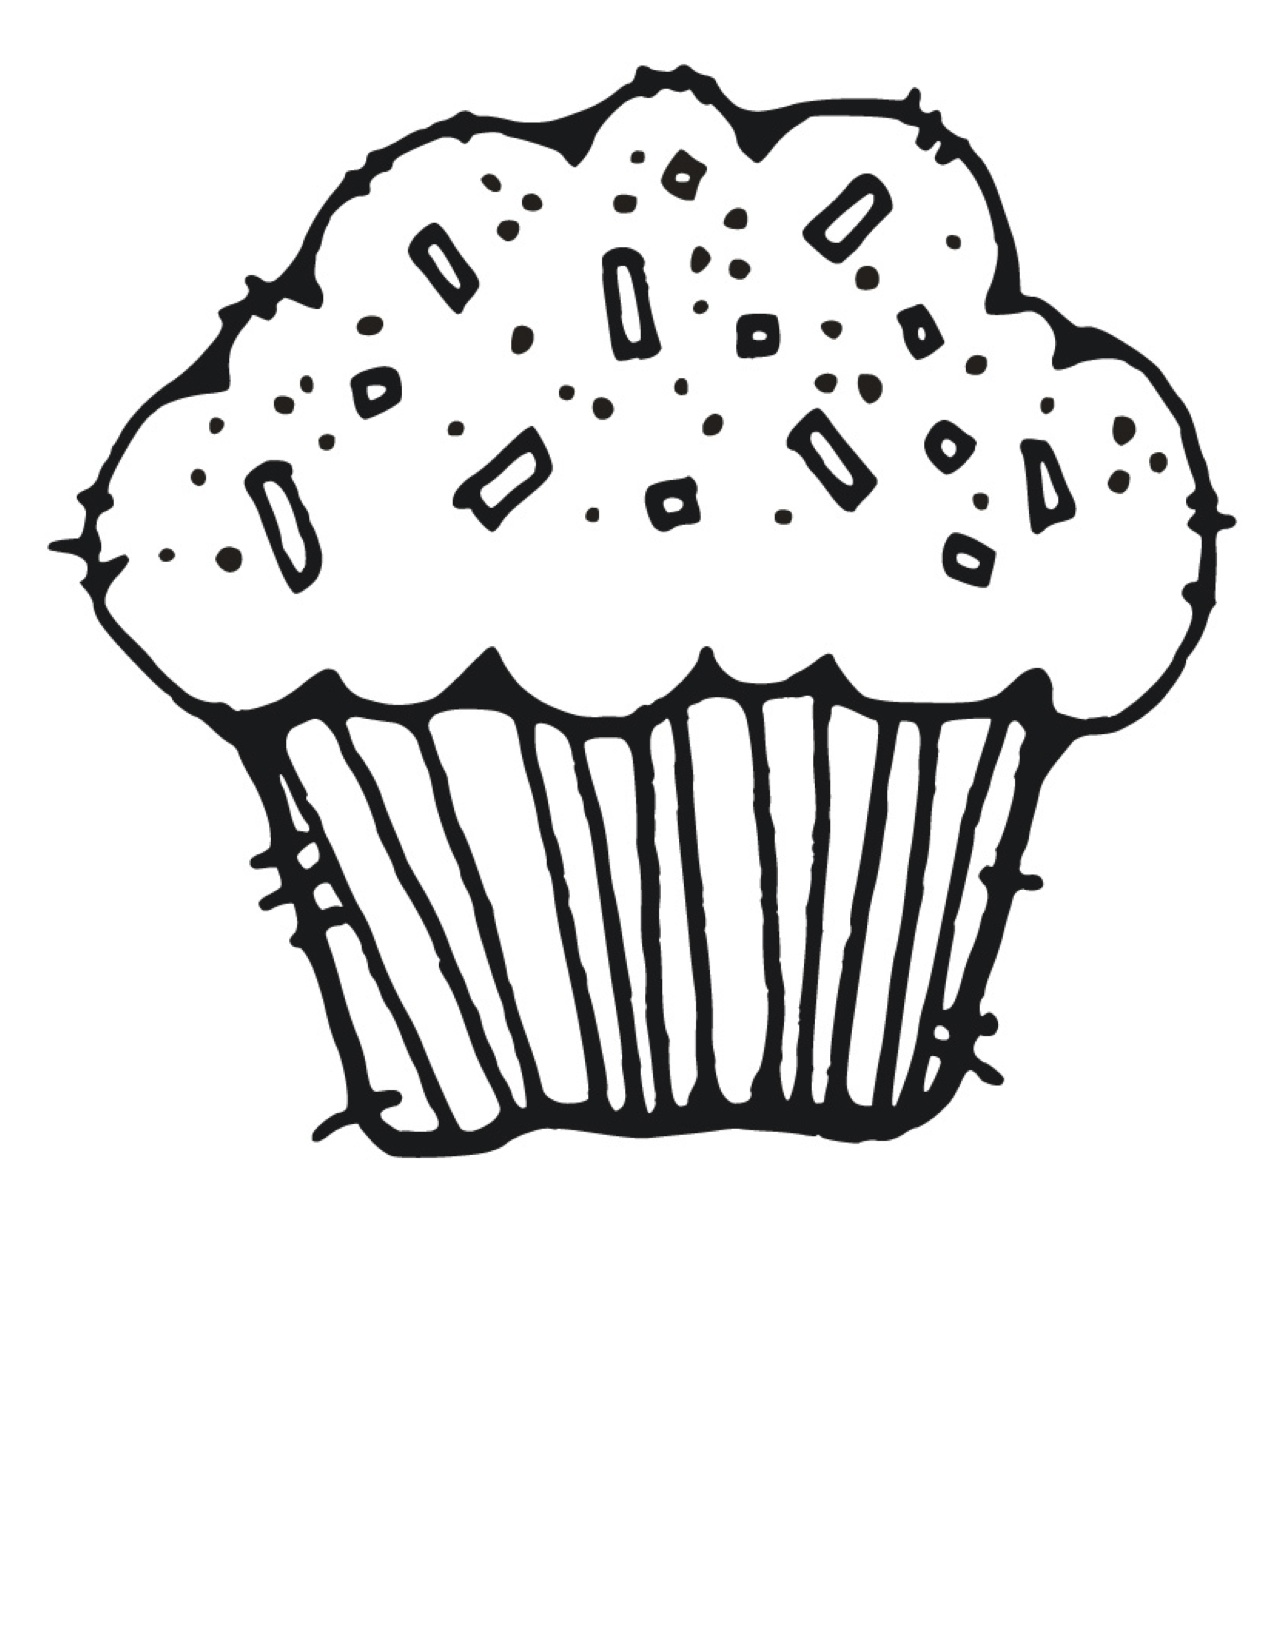 Cupcake Clipart Black And White & Cupcake Black And White Clip Art.